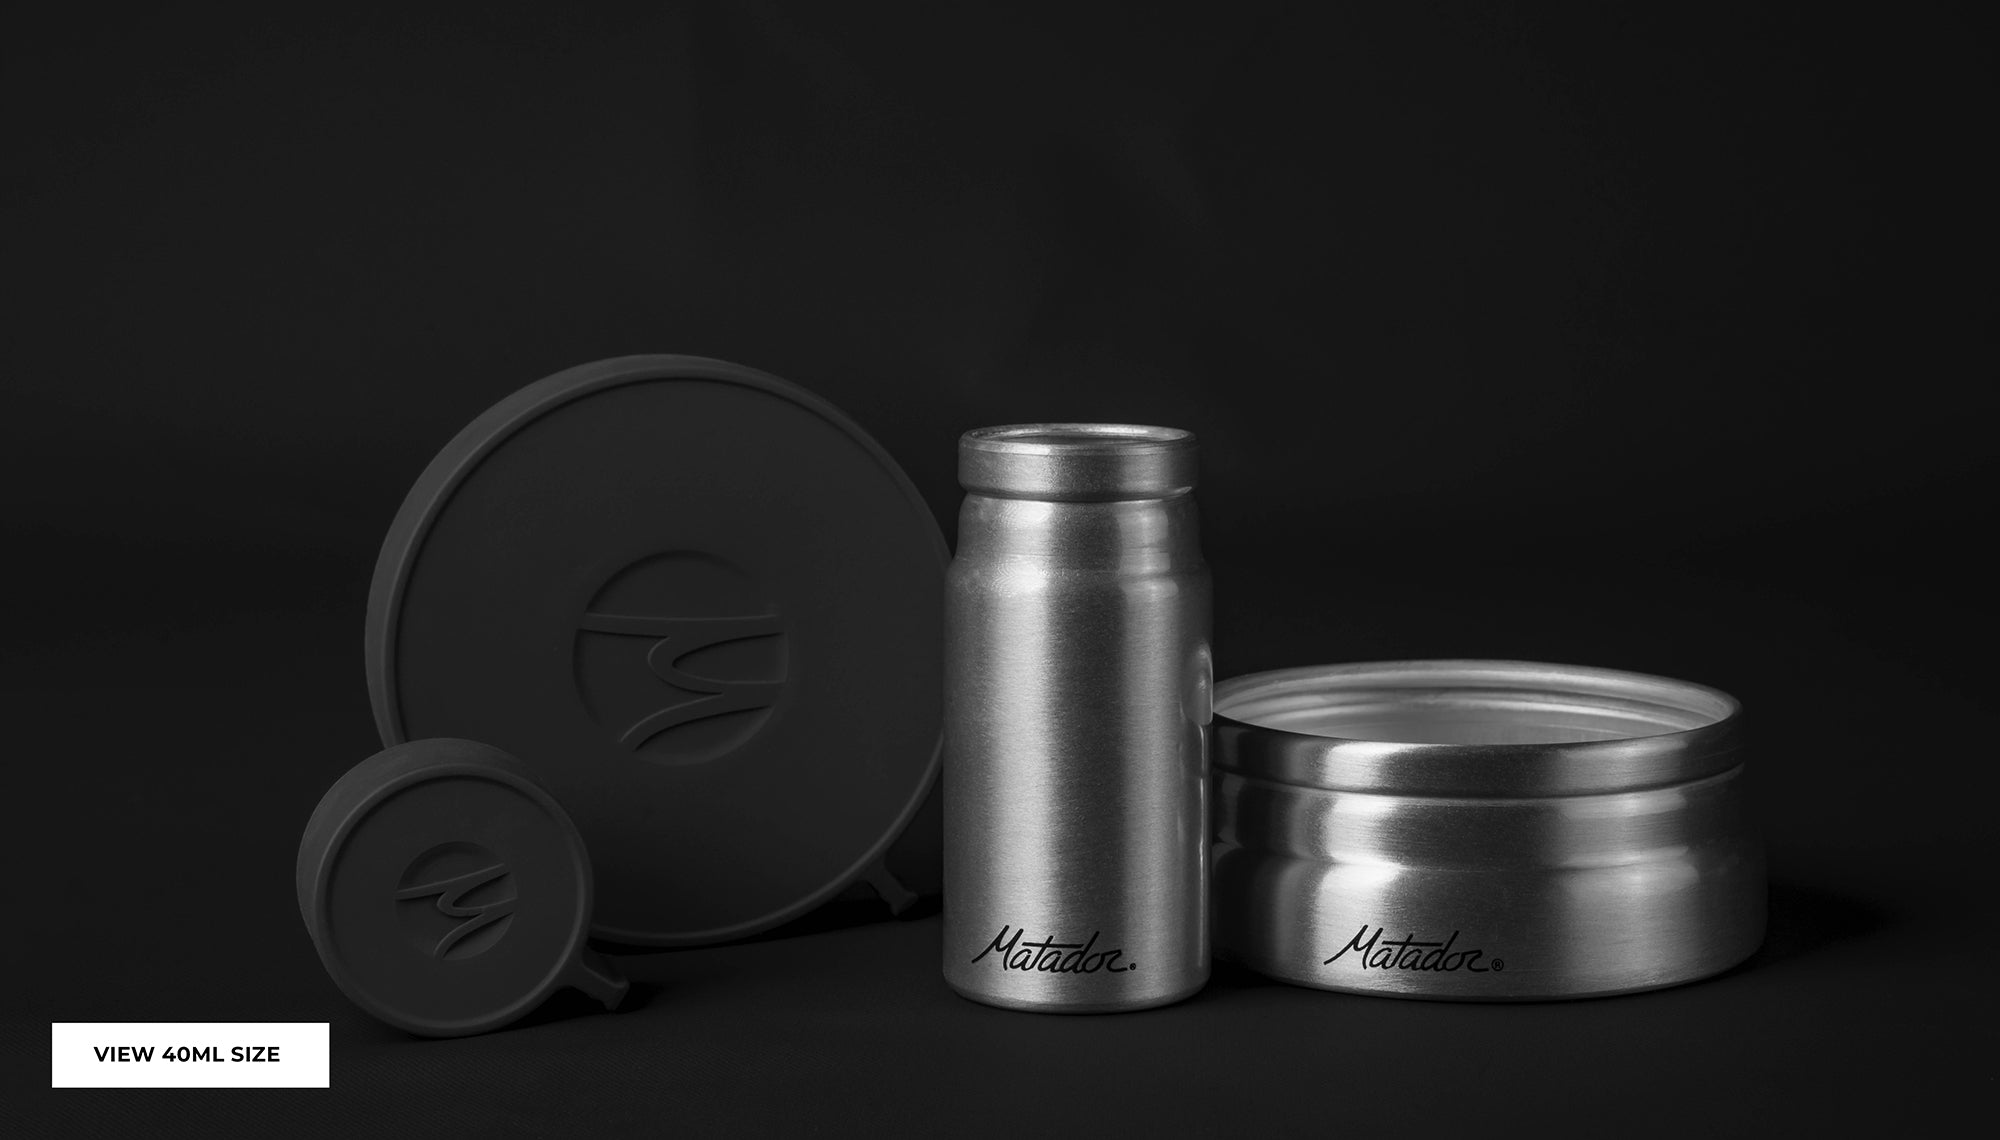 Large and small canister side by side on black background